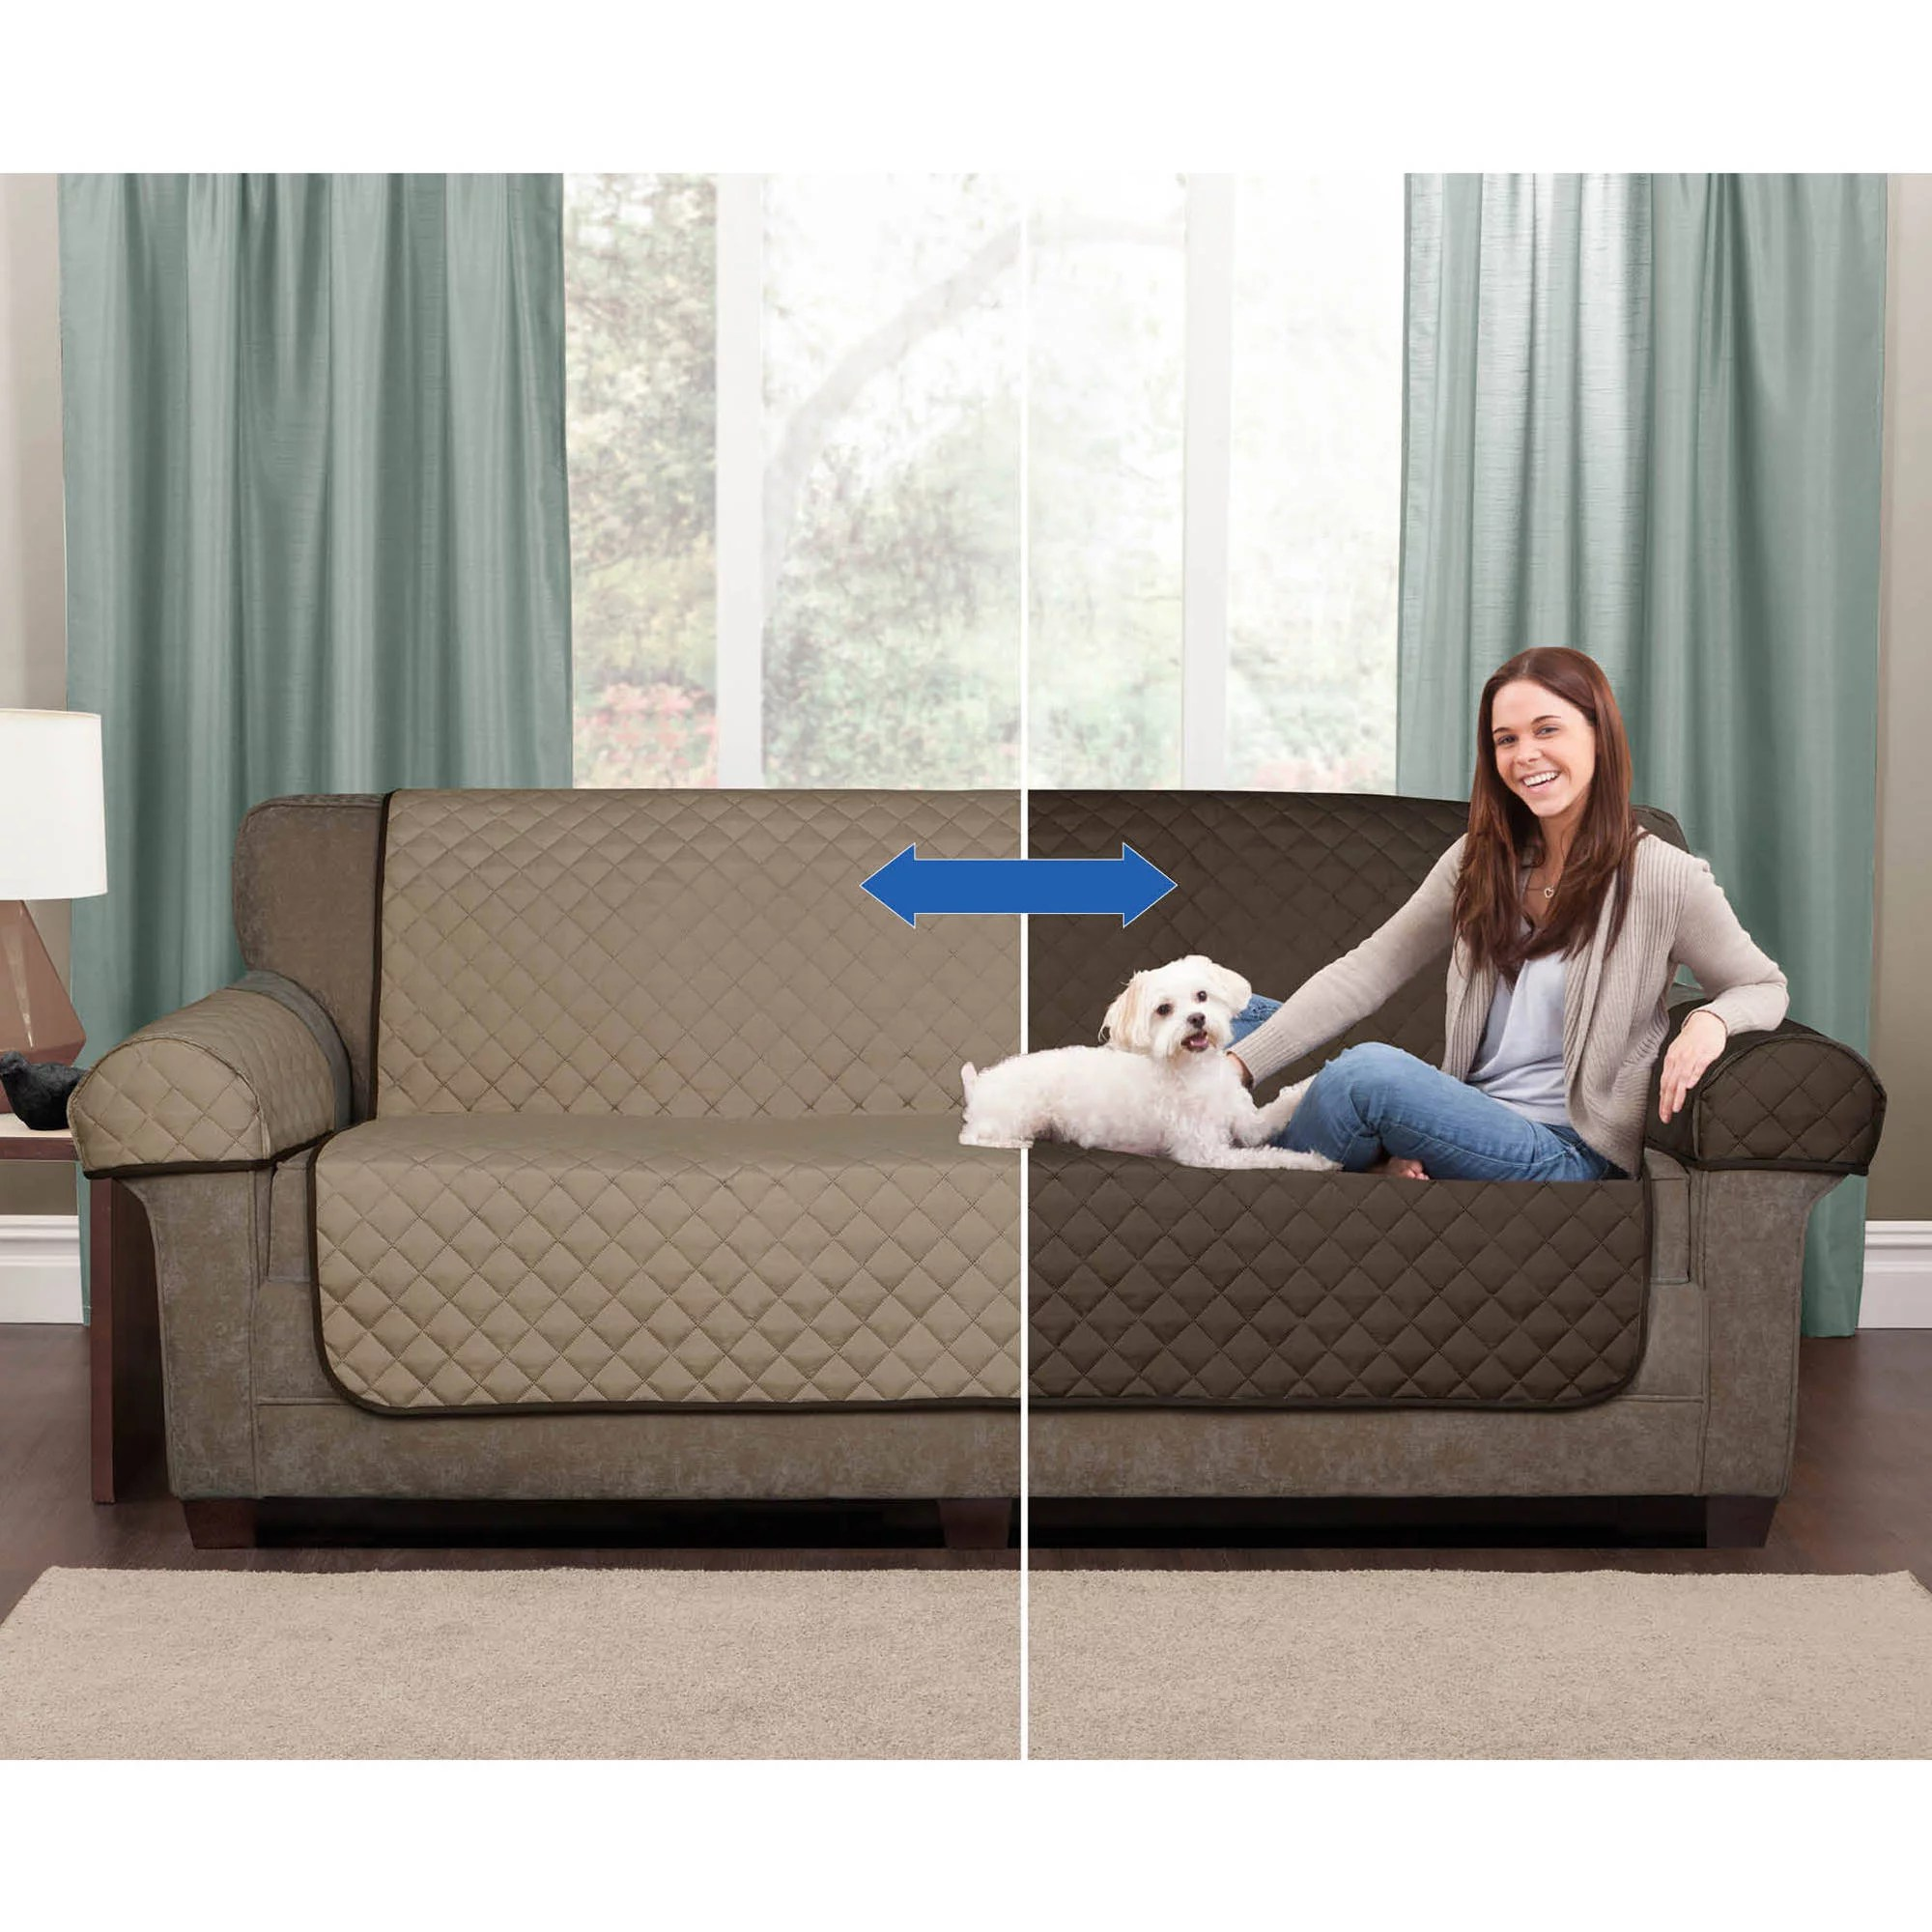 how much fabric to make a sofa cover elite leather maytex stretch pixel 2 piece furniture slipcover sand walmart com